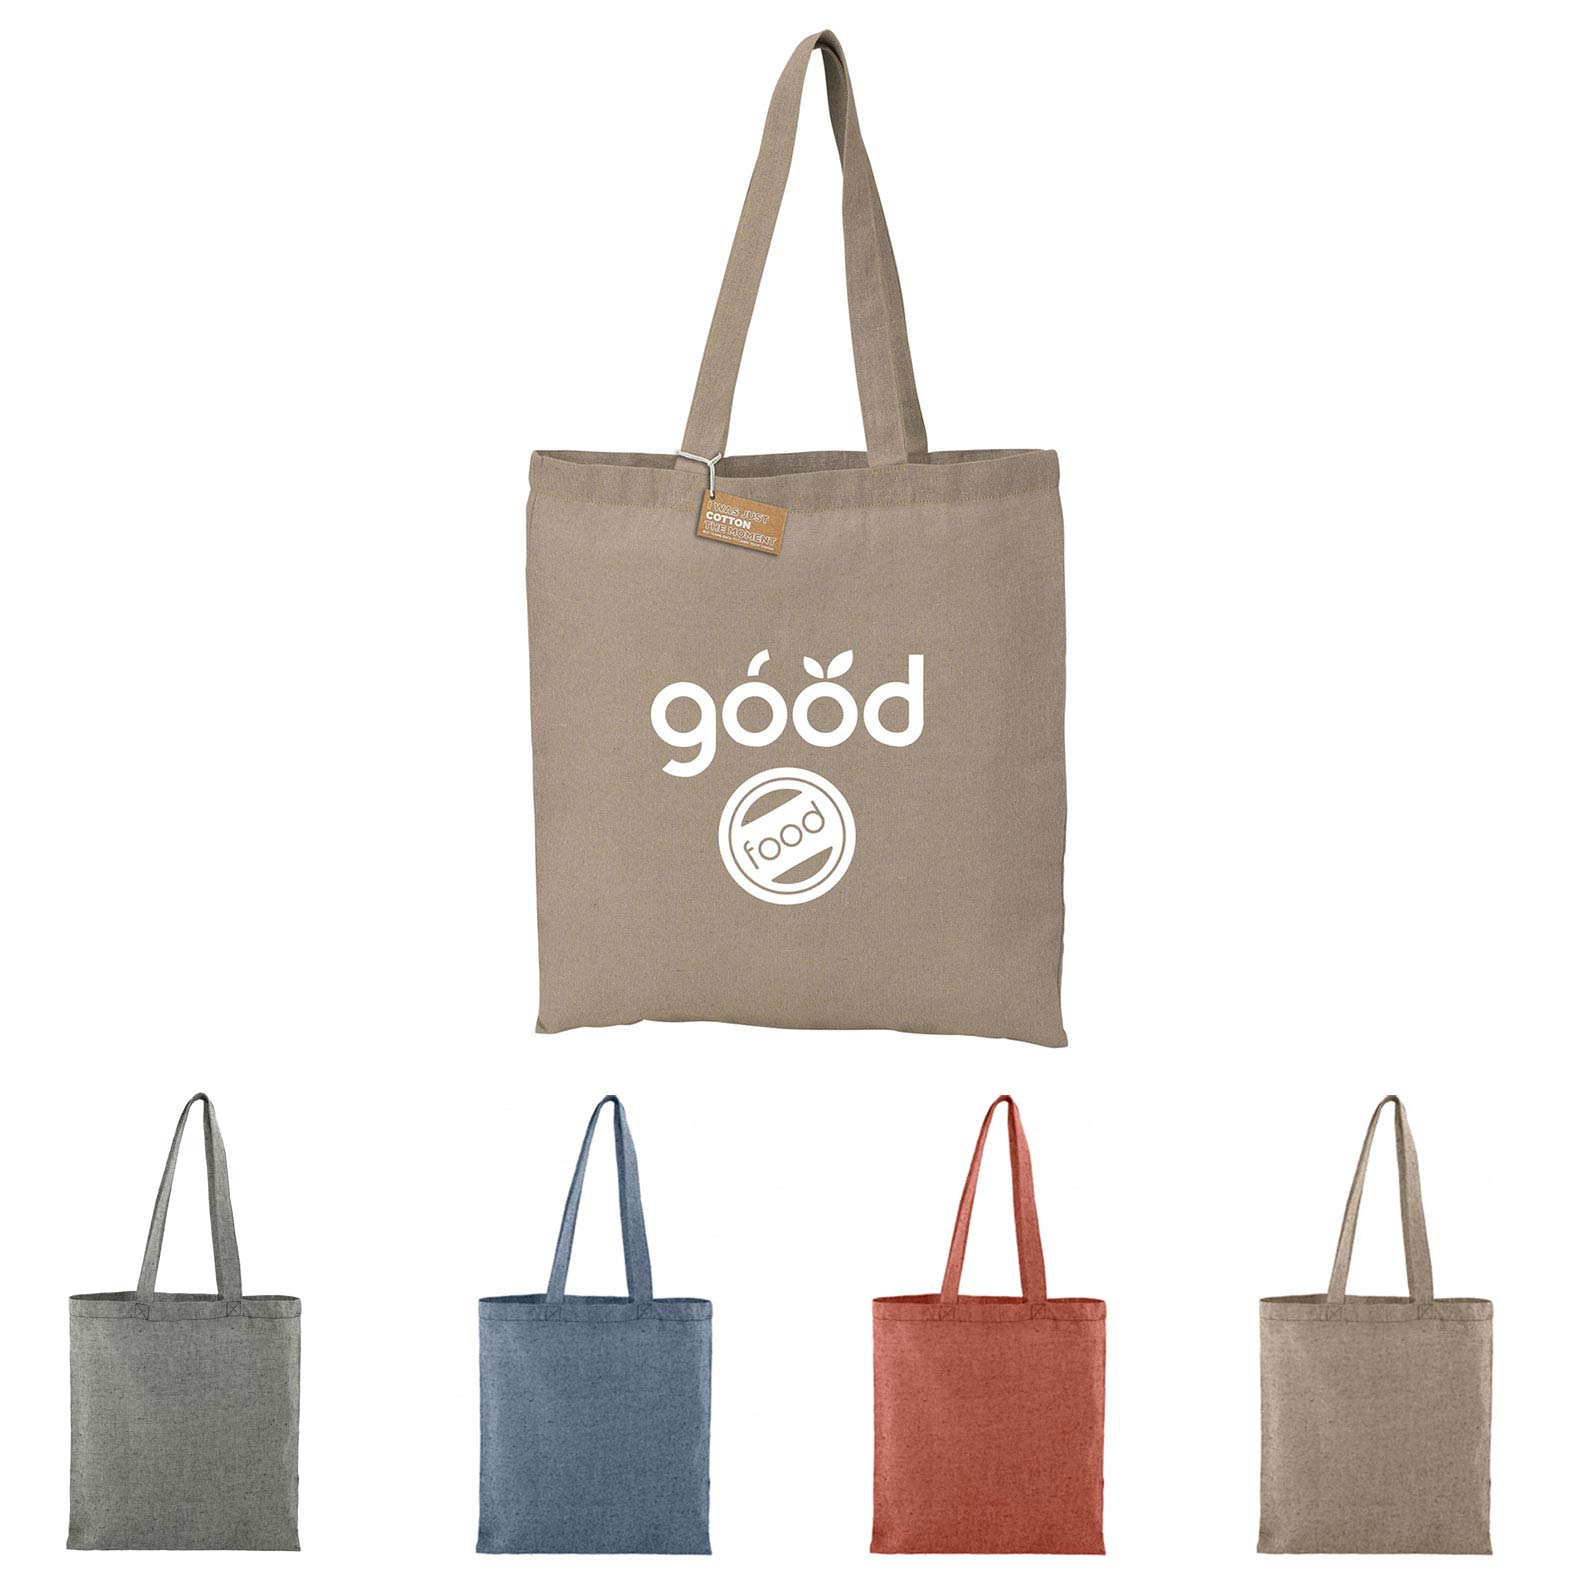 Recycled 5 oz. Cotton Twill Convention Tote